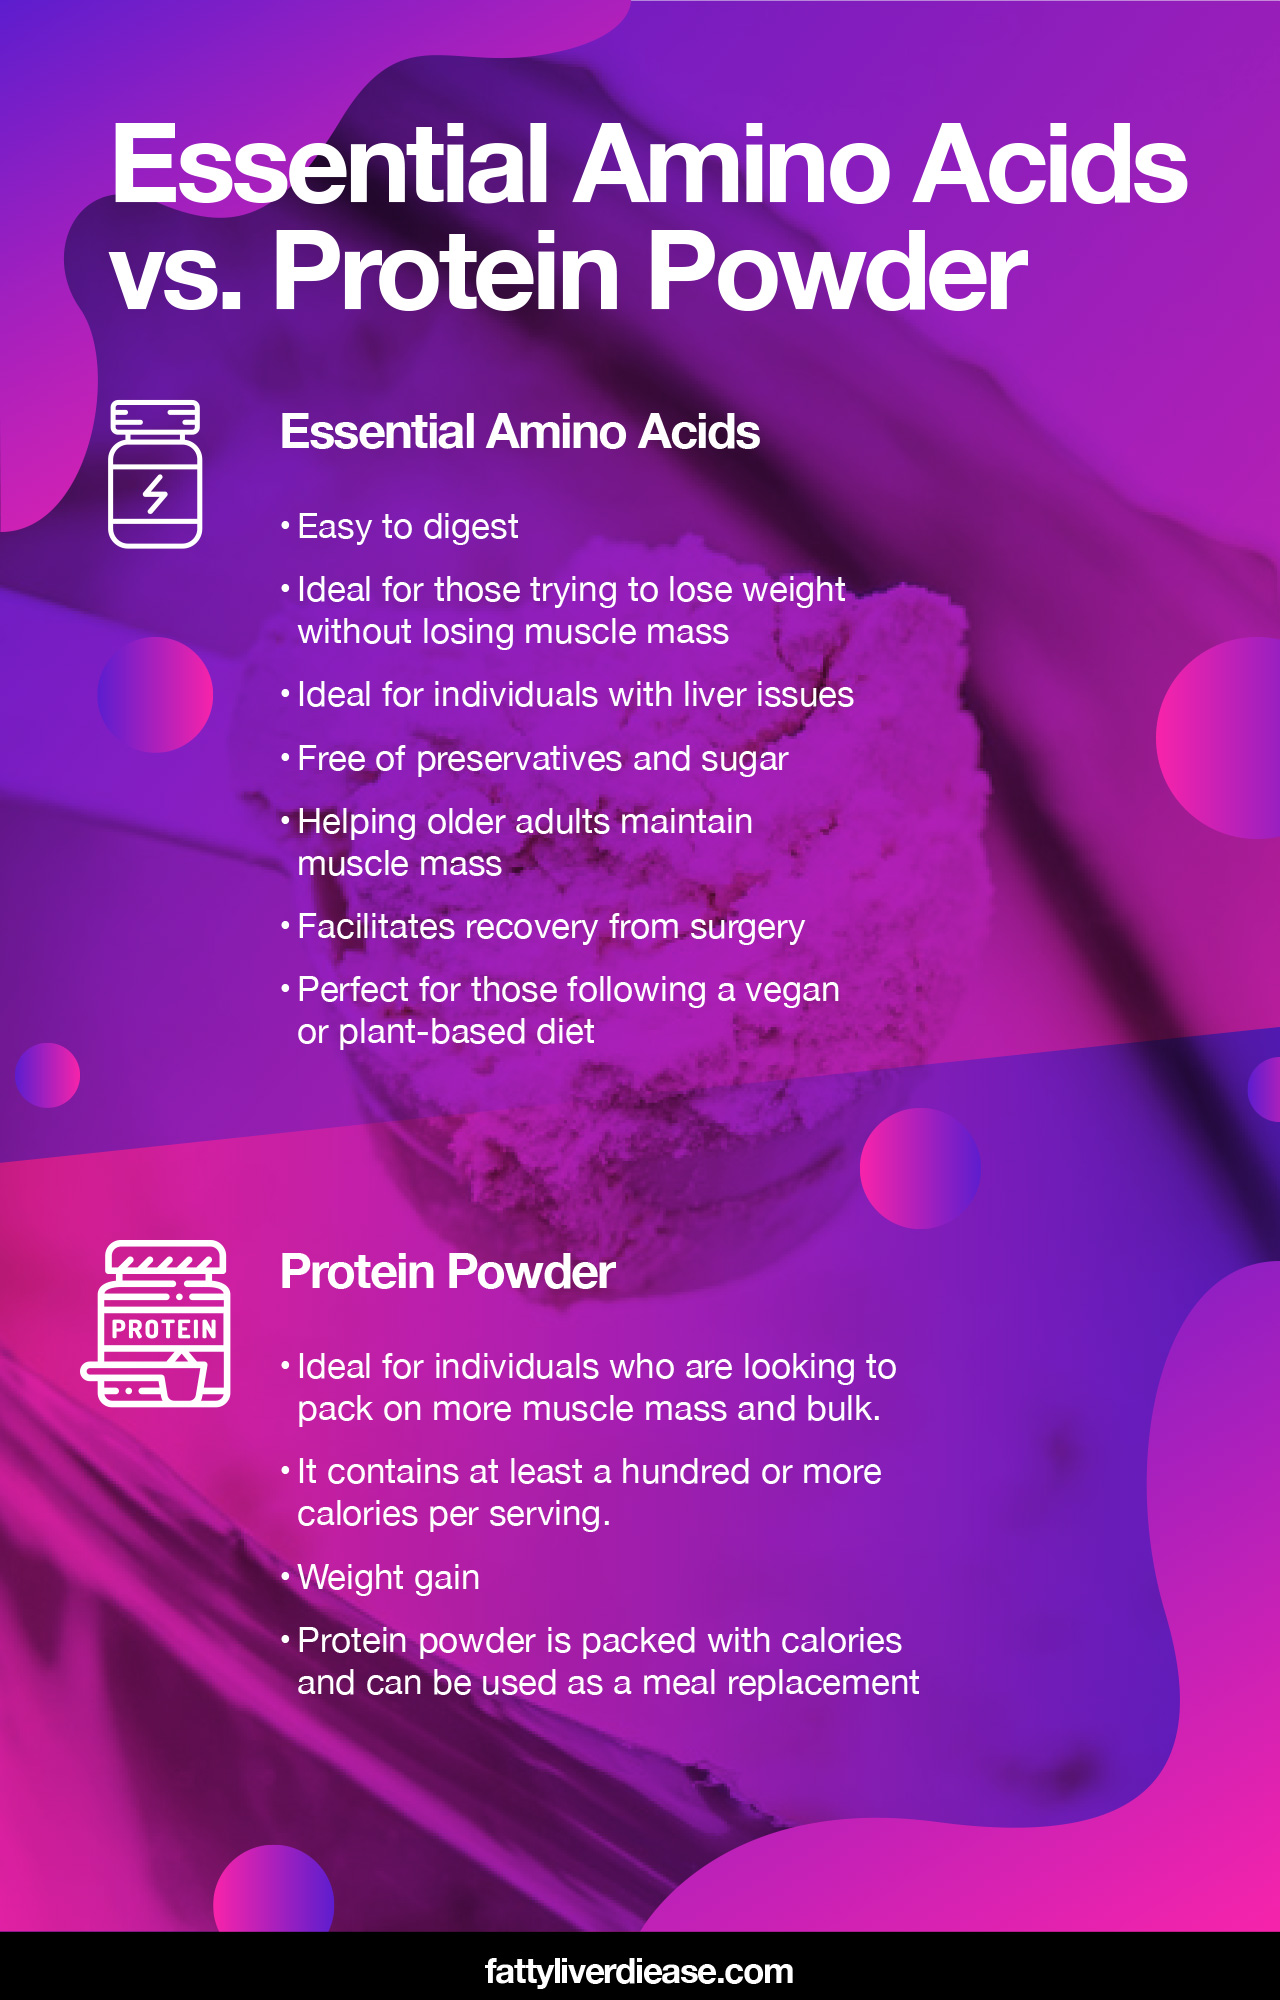 Essential Amino Acids vs Protein Powder: Which Is Better?